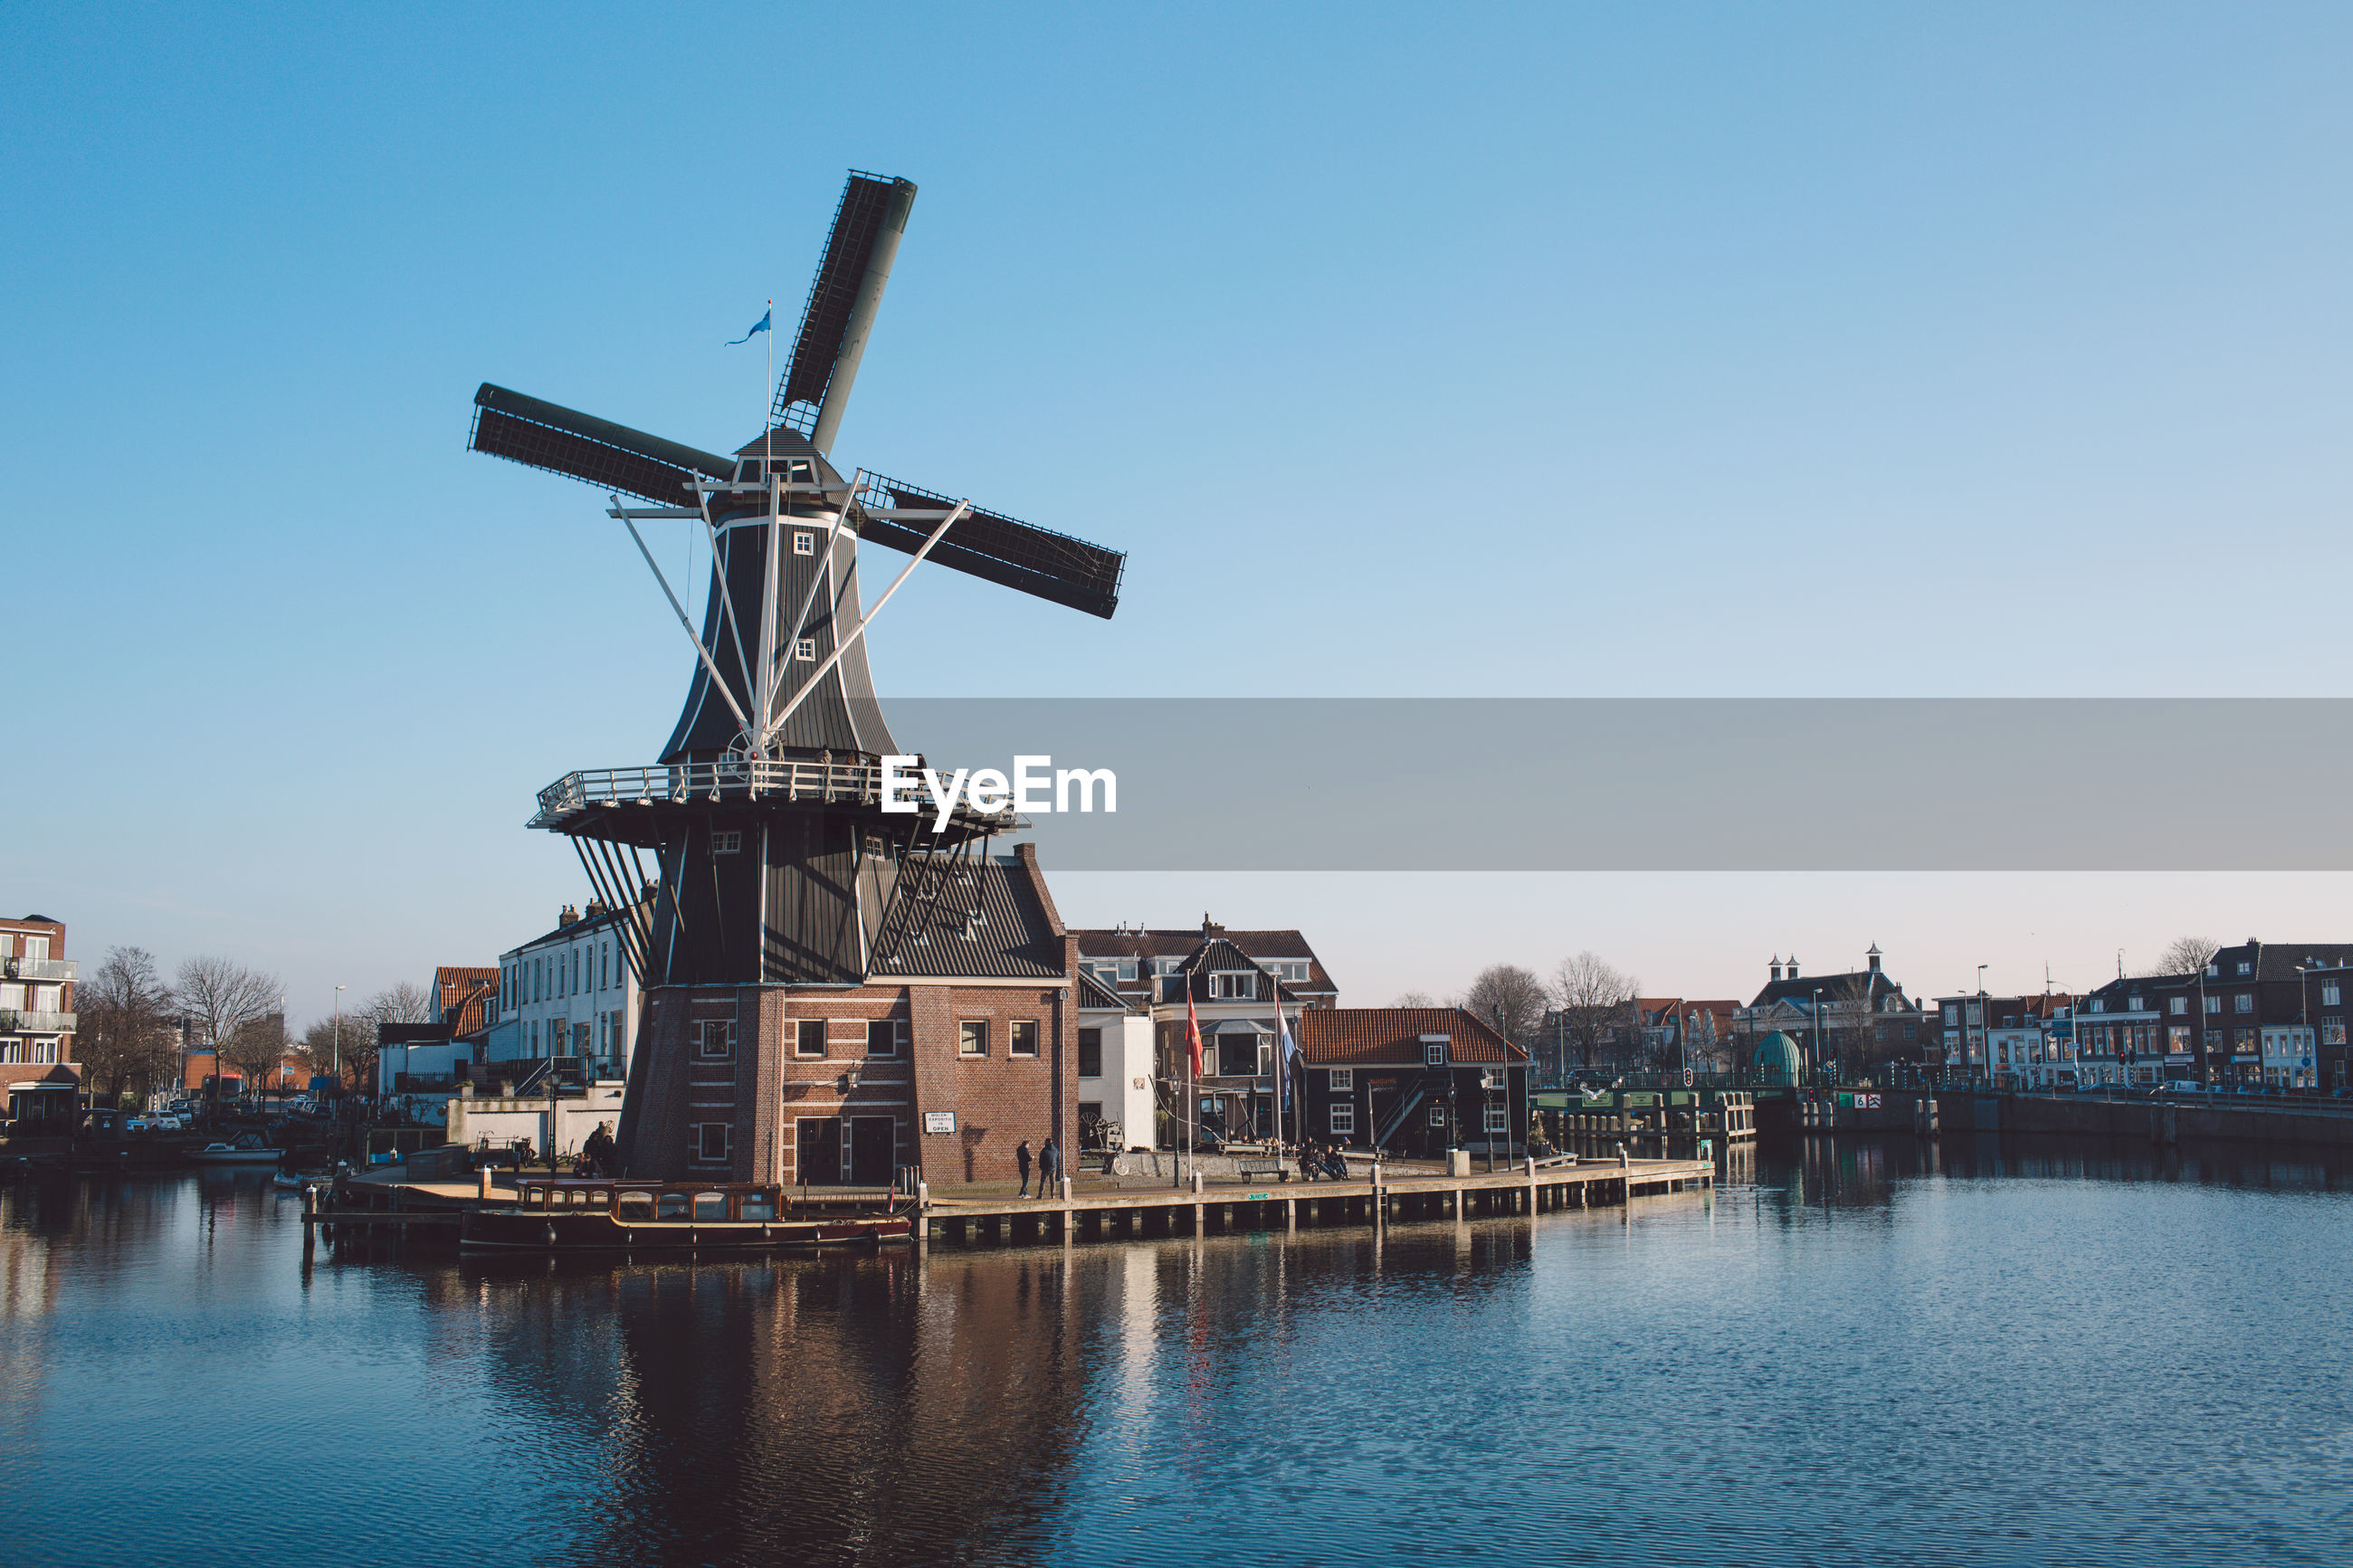 Traditional windmill by river in city